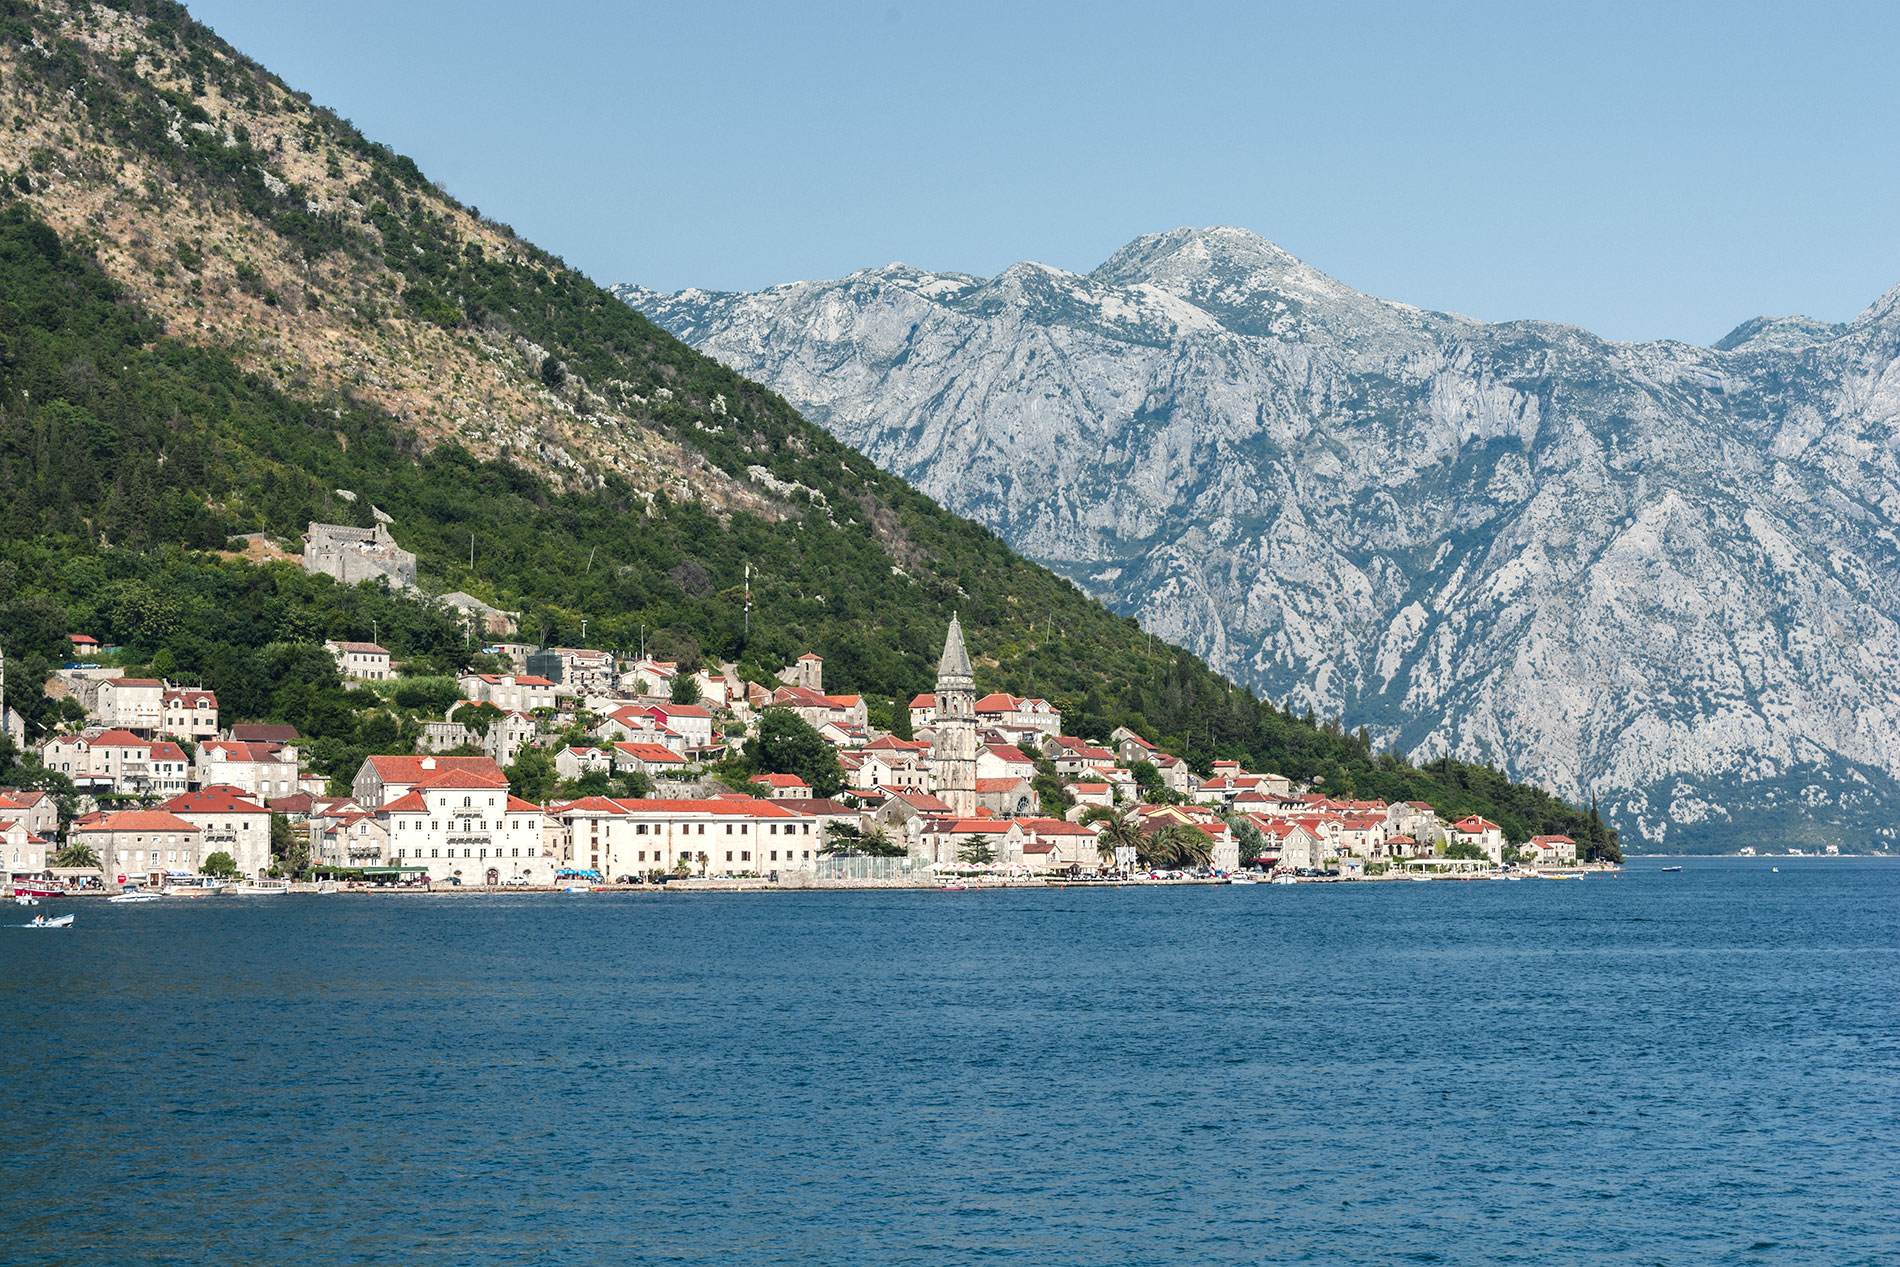 33 Stunning Photos of Montenegro That Will Inspire You to Visit